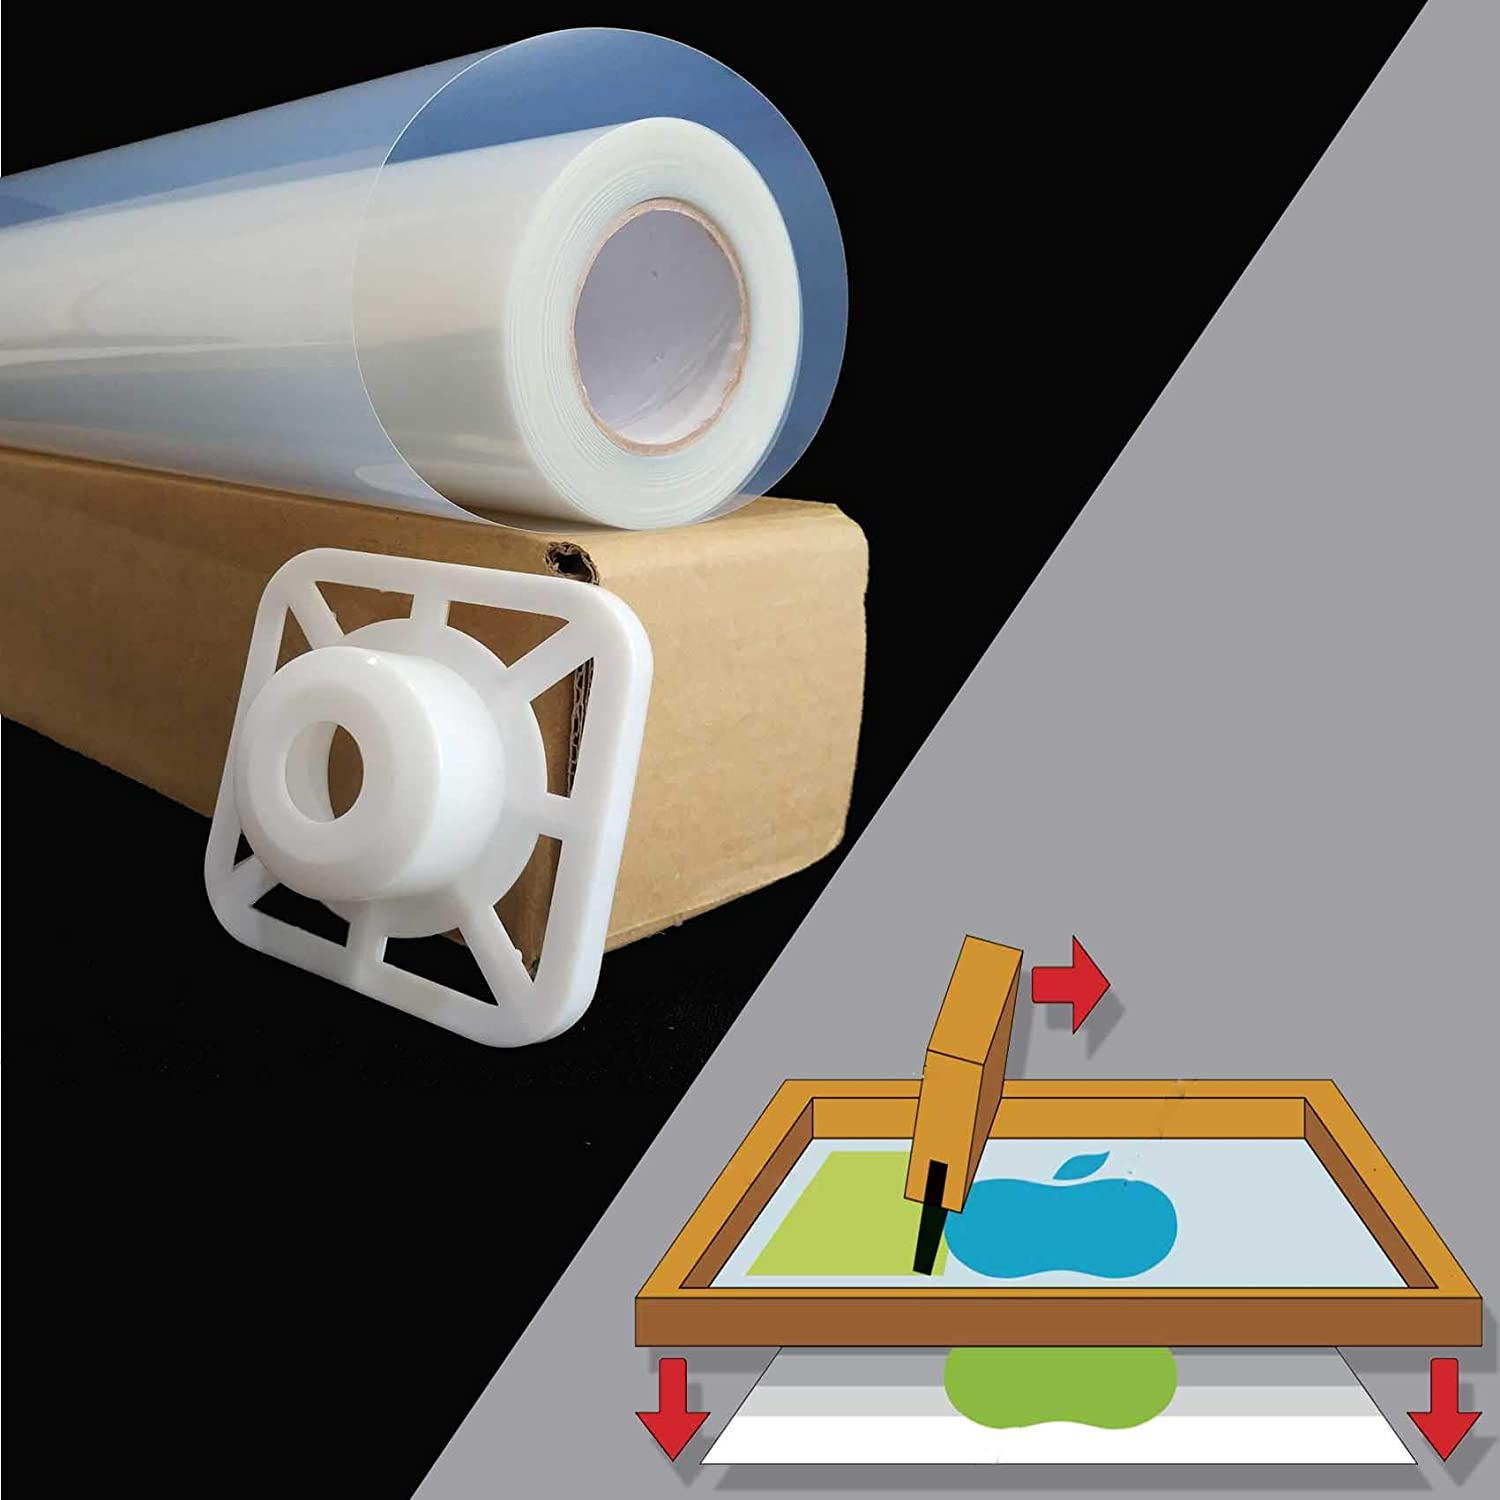 Roll,Premium Waterproof Inkjet Instant-Dry Transparency Positive Silk Screen Printing Film,Great for EPSON,HP,Canon Water-Based Dye and Pigment Inks Printers 0.33m x 30m 13 inches x 100ft